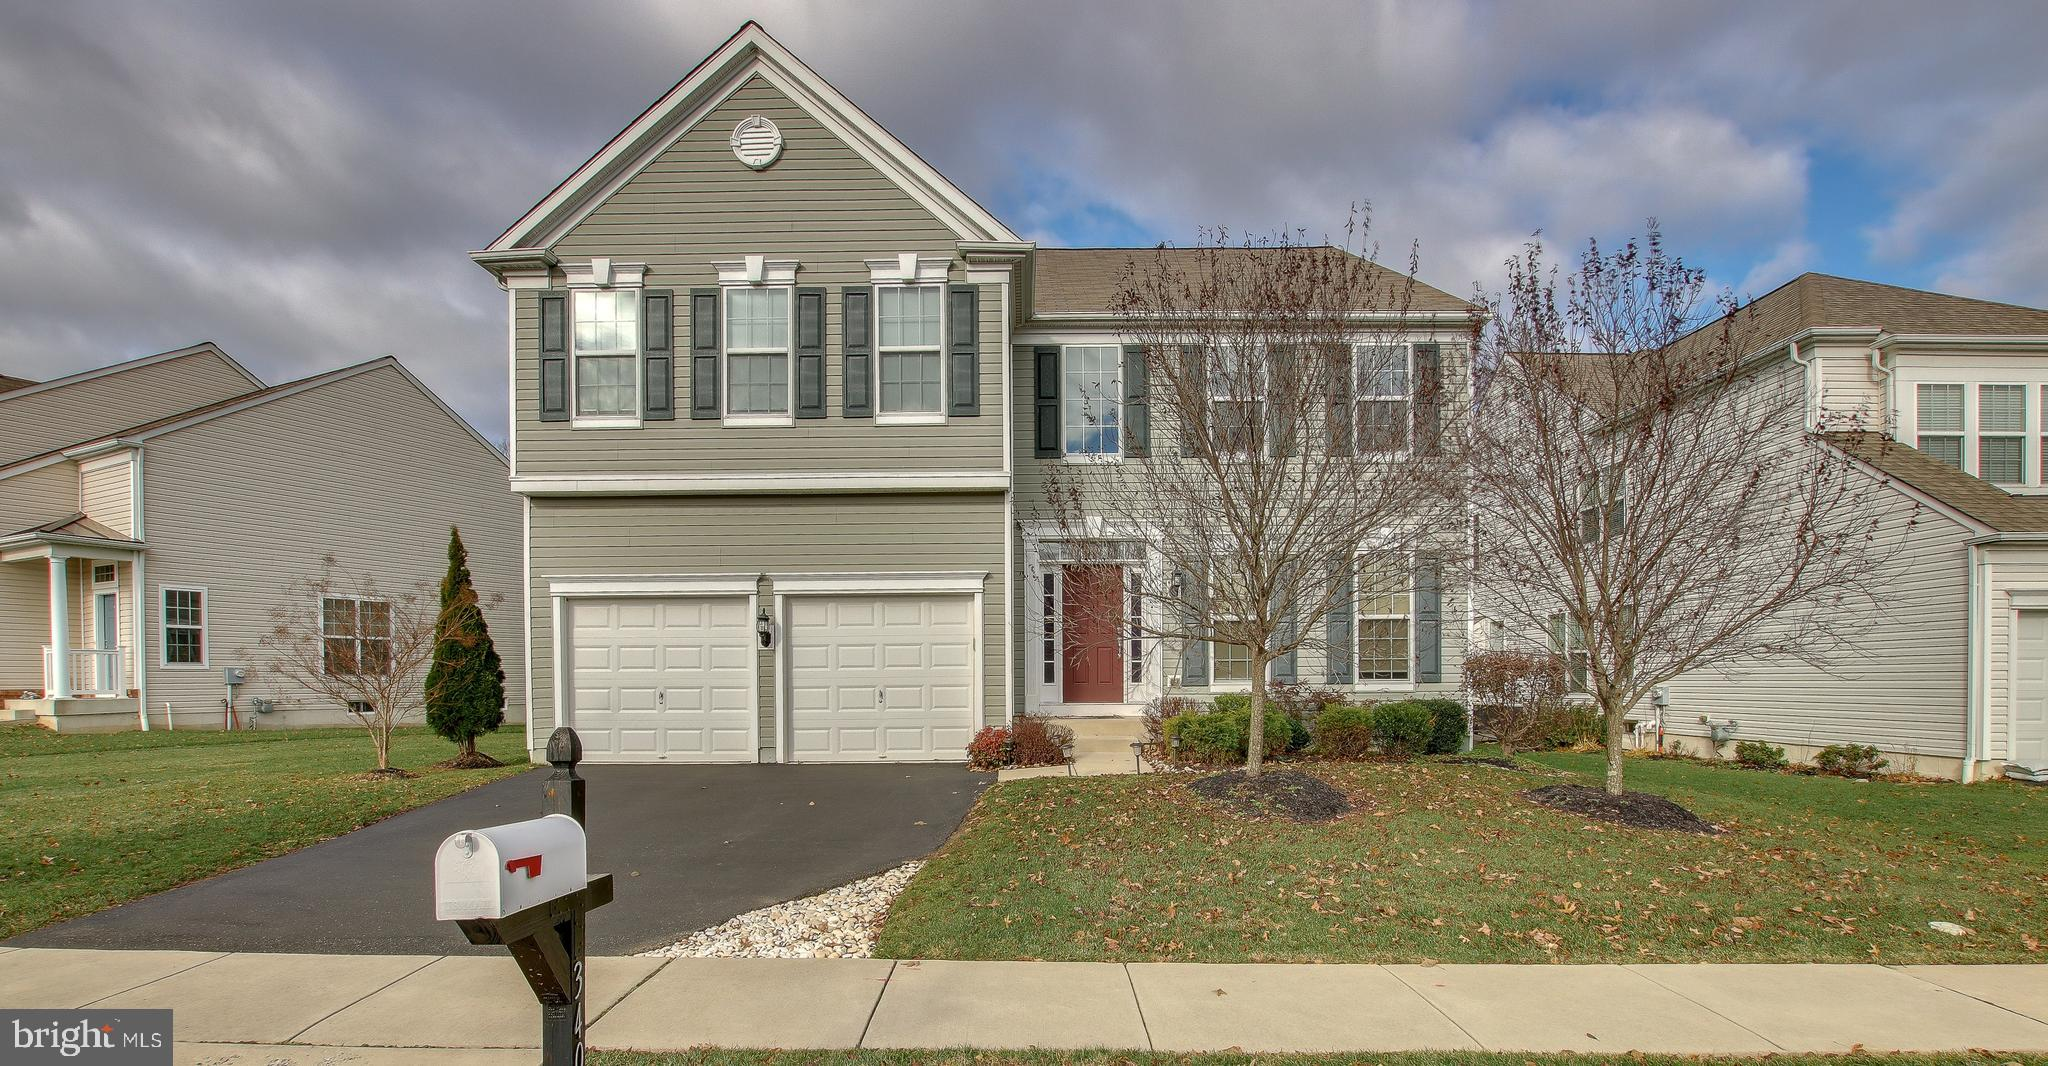 340 W ARMSTRONG DRIVE, FOUNTAINVILLE, PA 18923